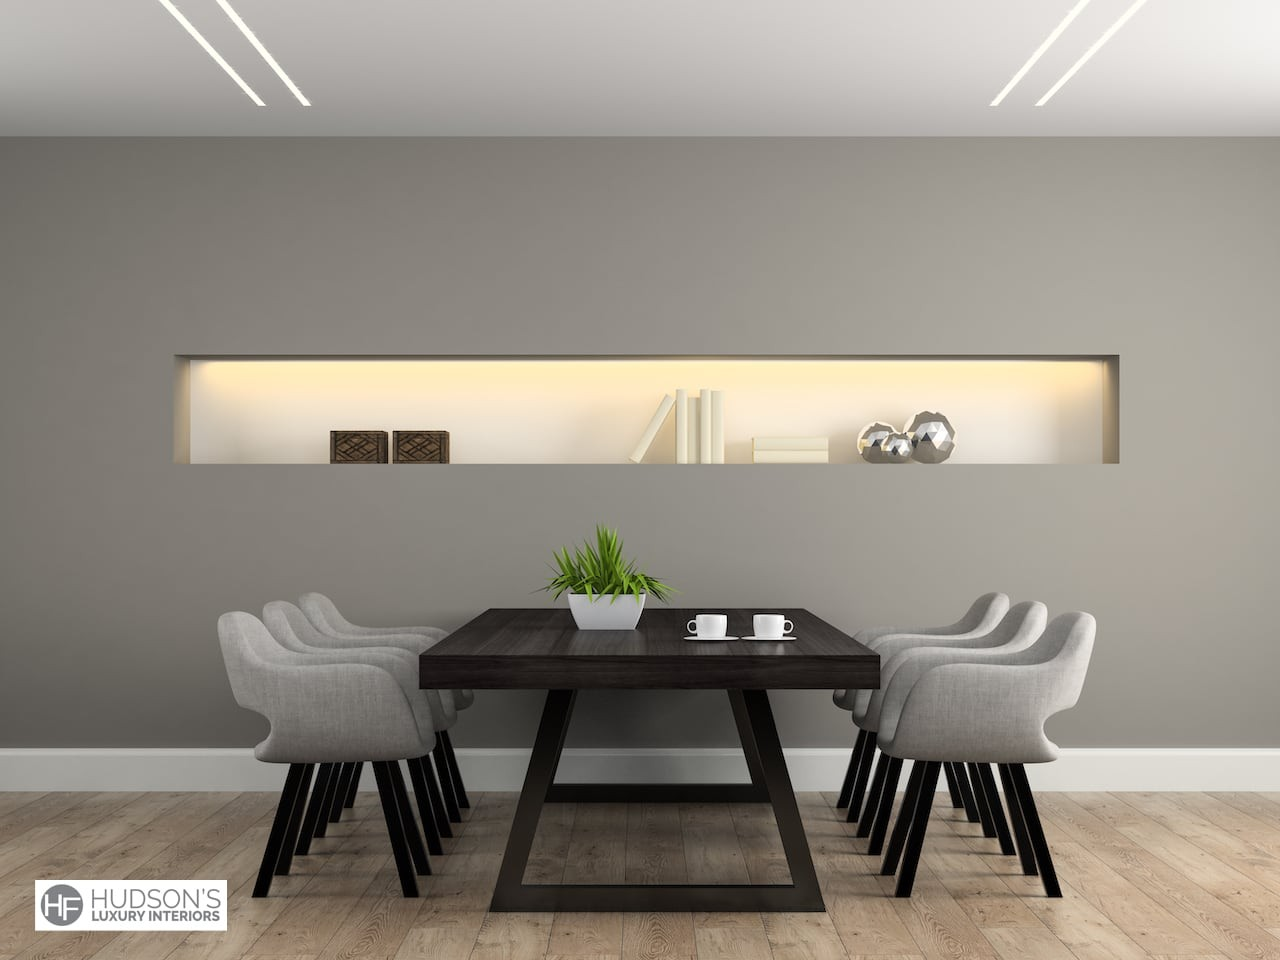 7 Key Features Of A Minimalist Dining Room Hudson S Luxury Interiors